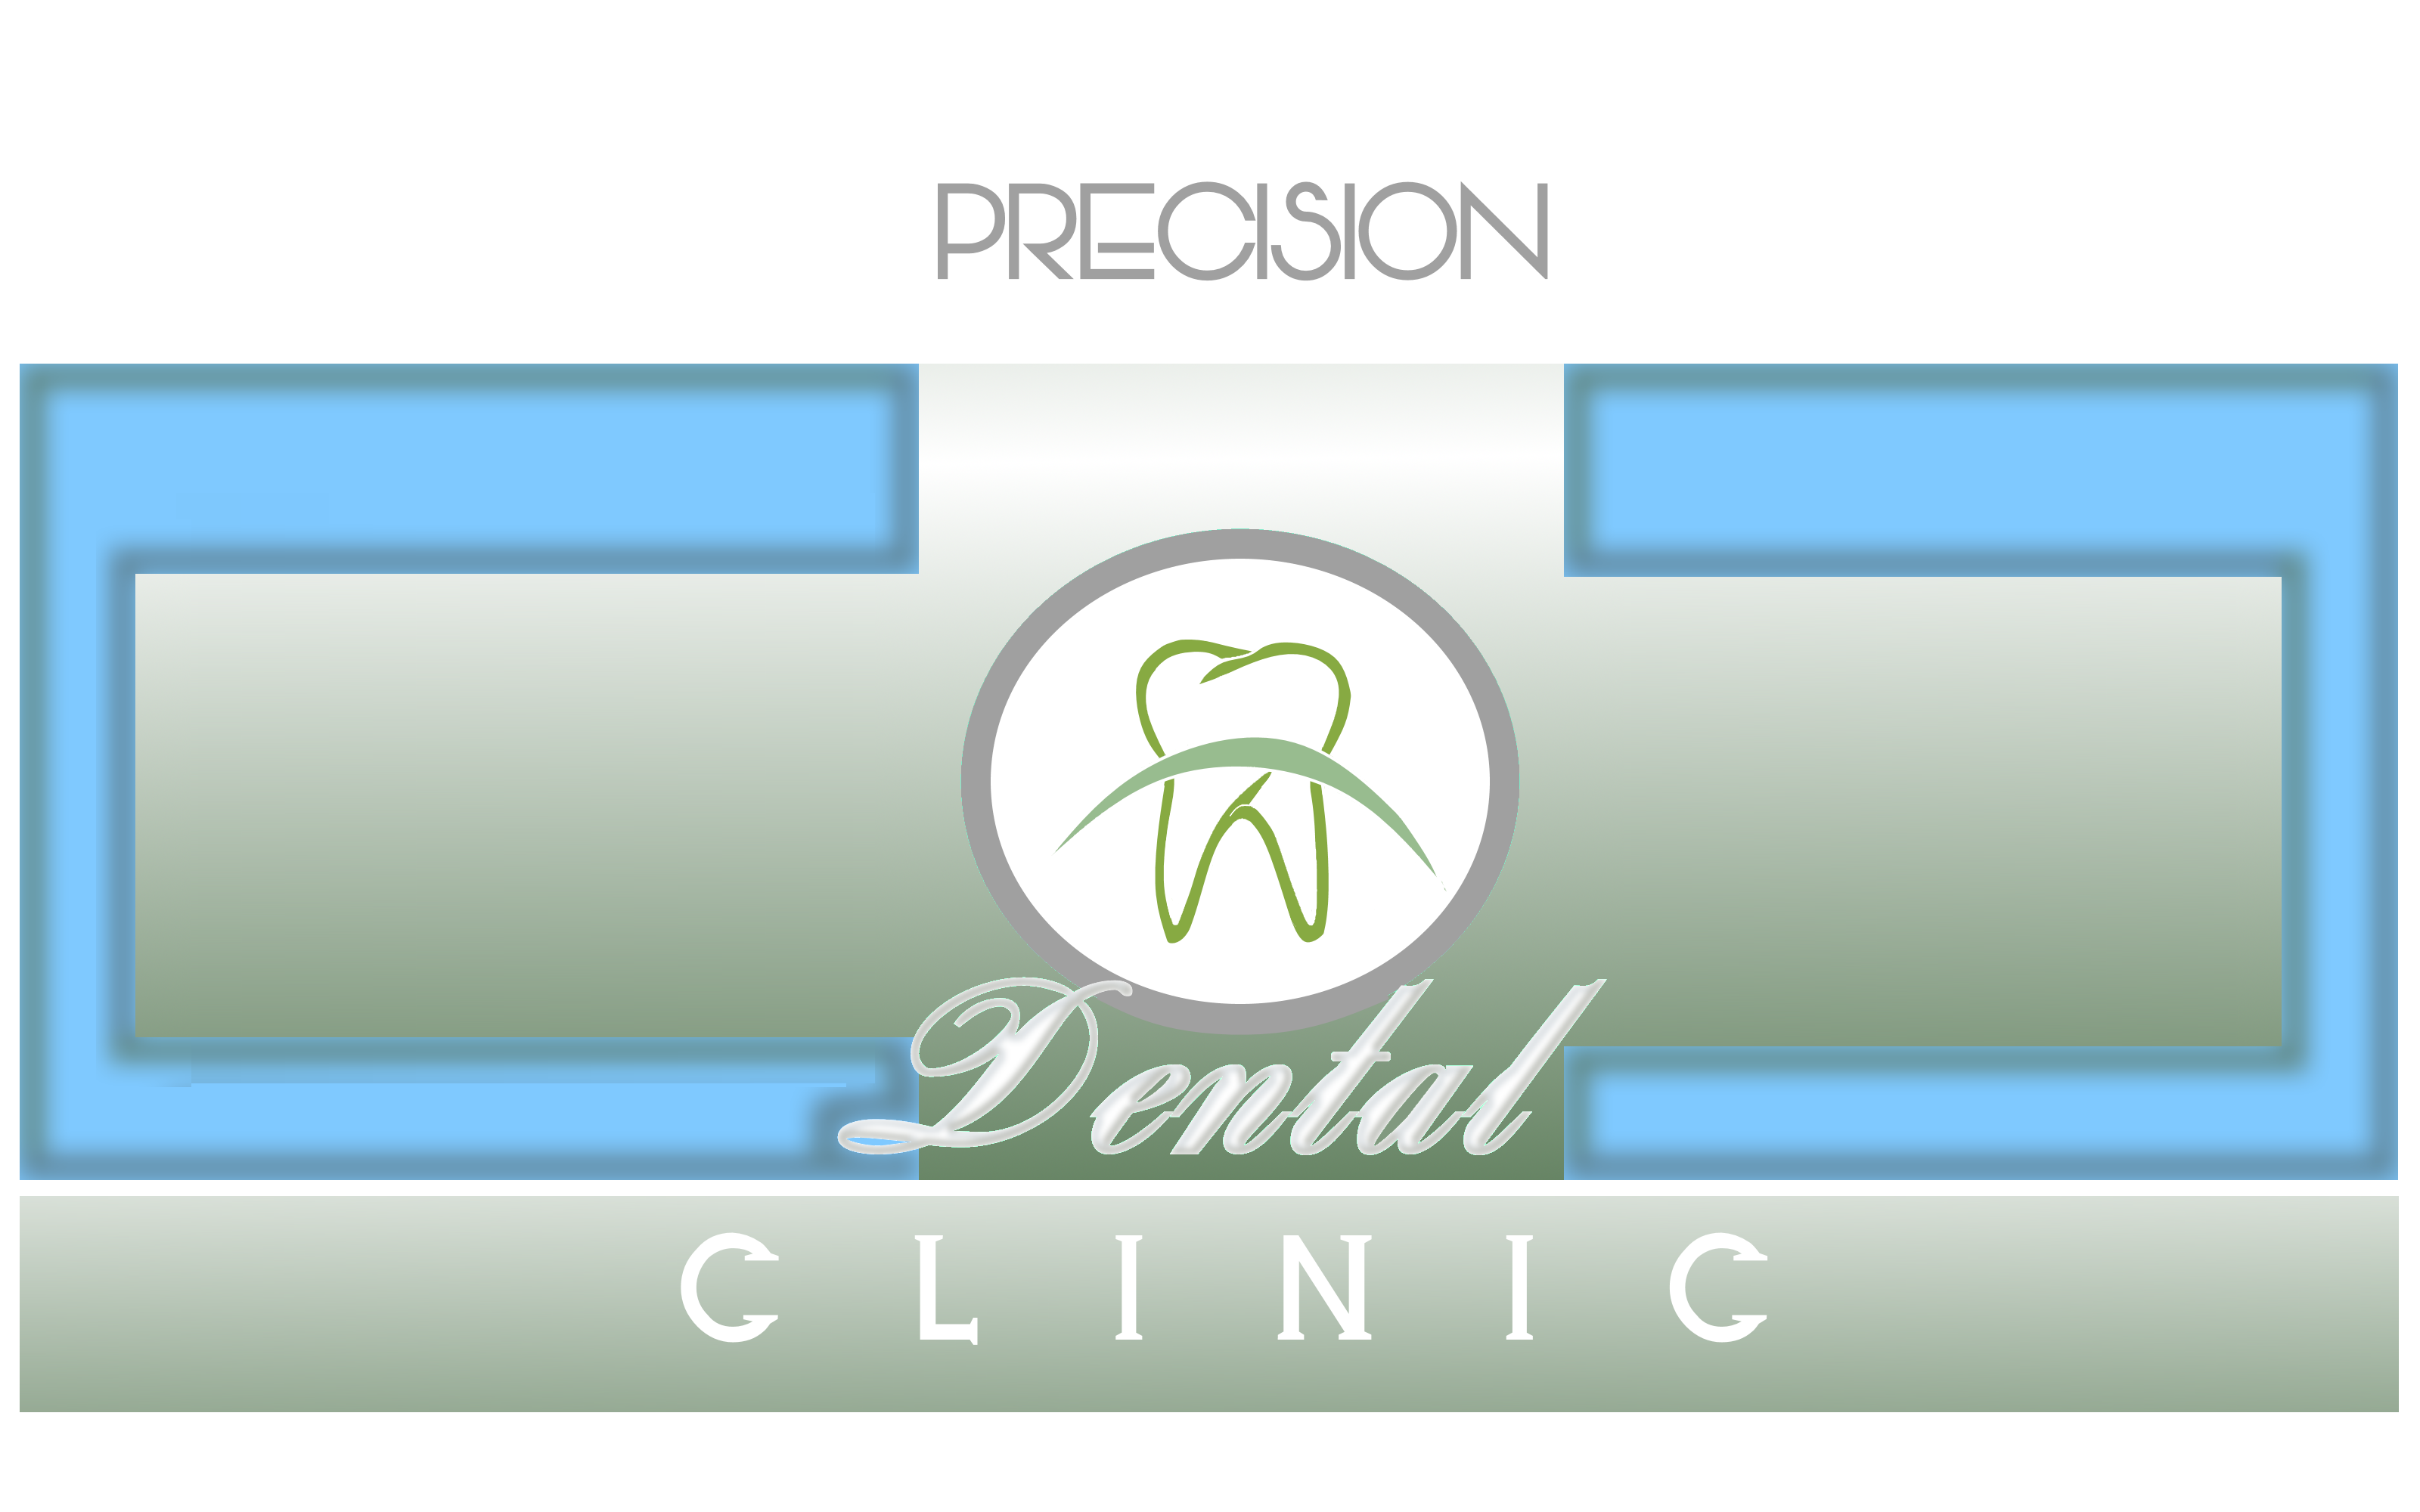 Logo Design by Roberto Bassi - Entry No. 135 in the Logo Design Contest Captivating Logo Design for Precision Dental Clinic.